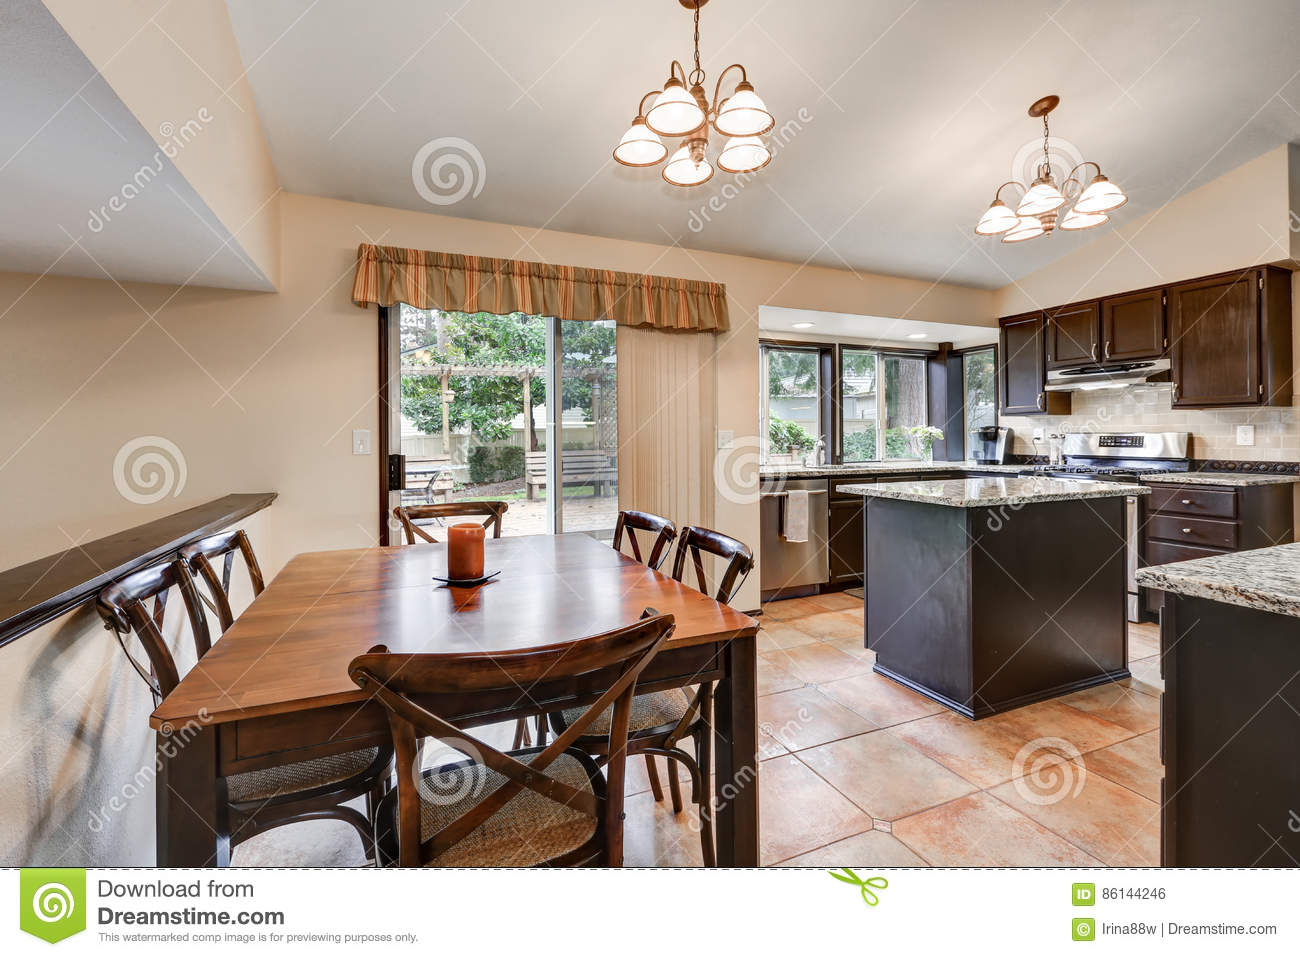 Classic Kitchen Room Design With Kitchen Island Stock Photo Image